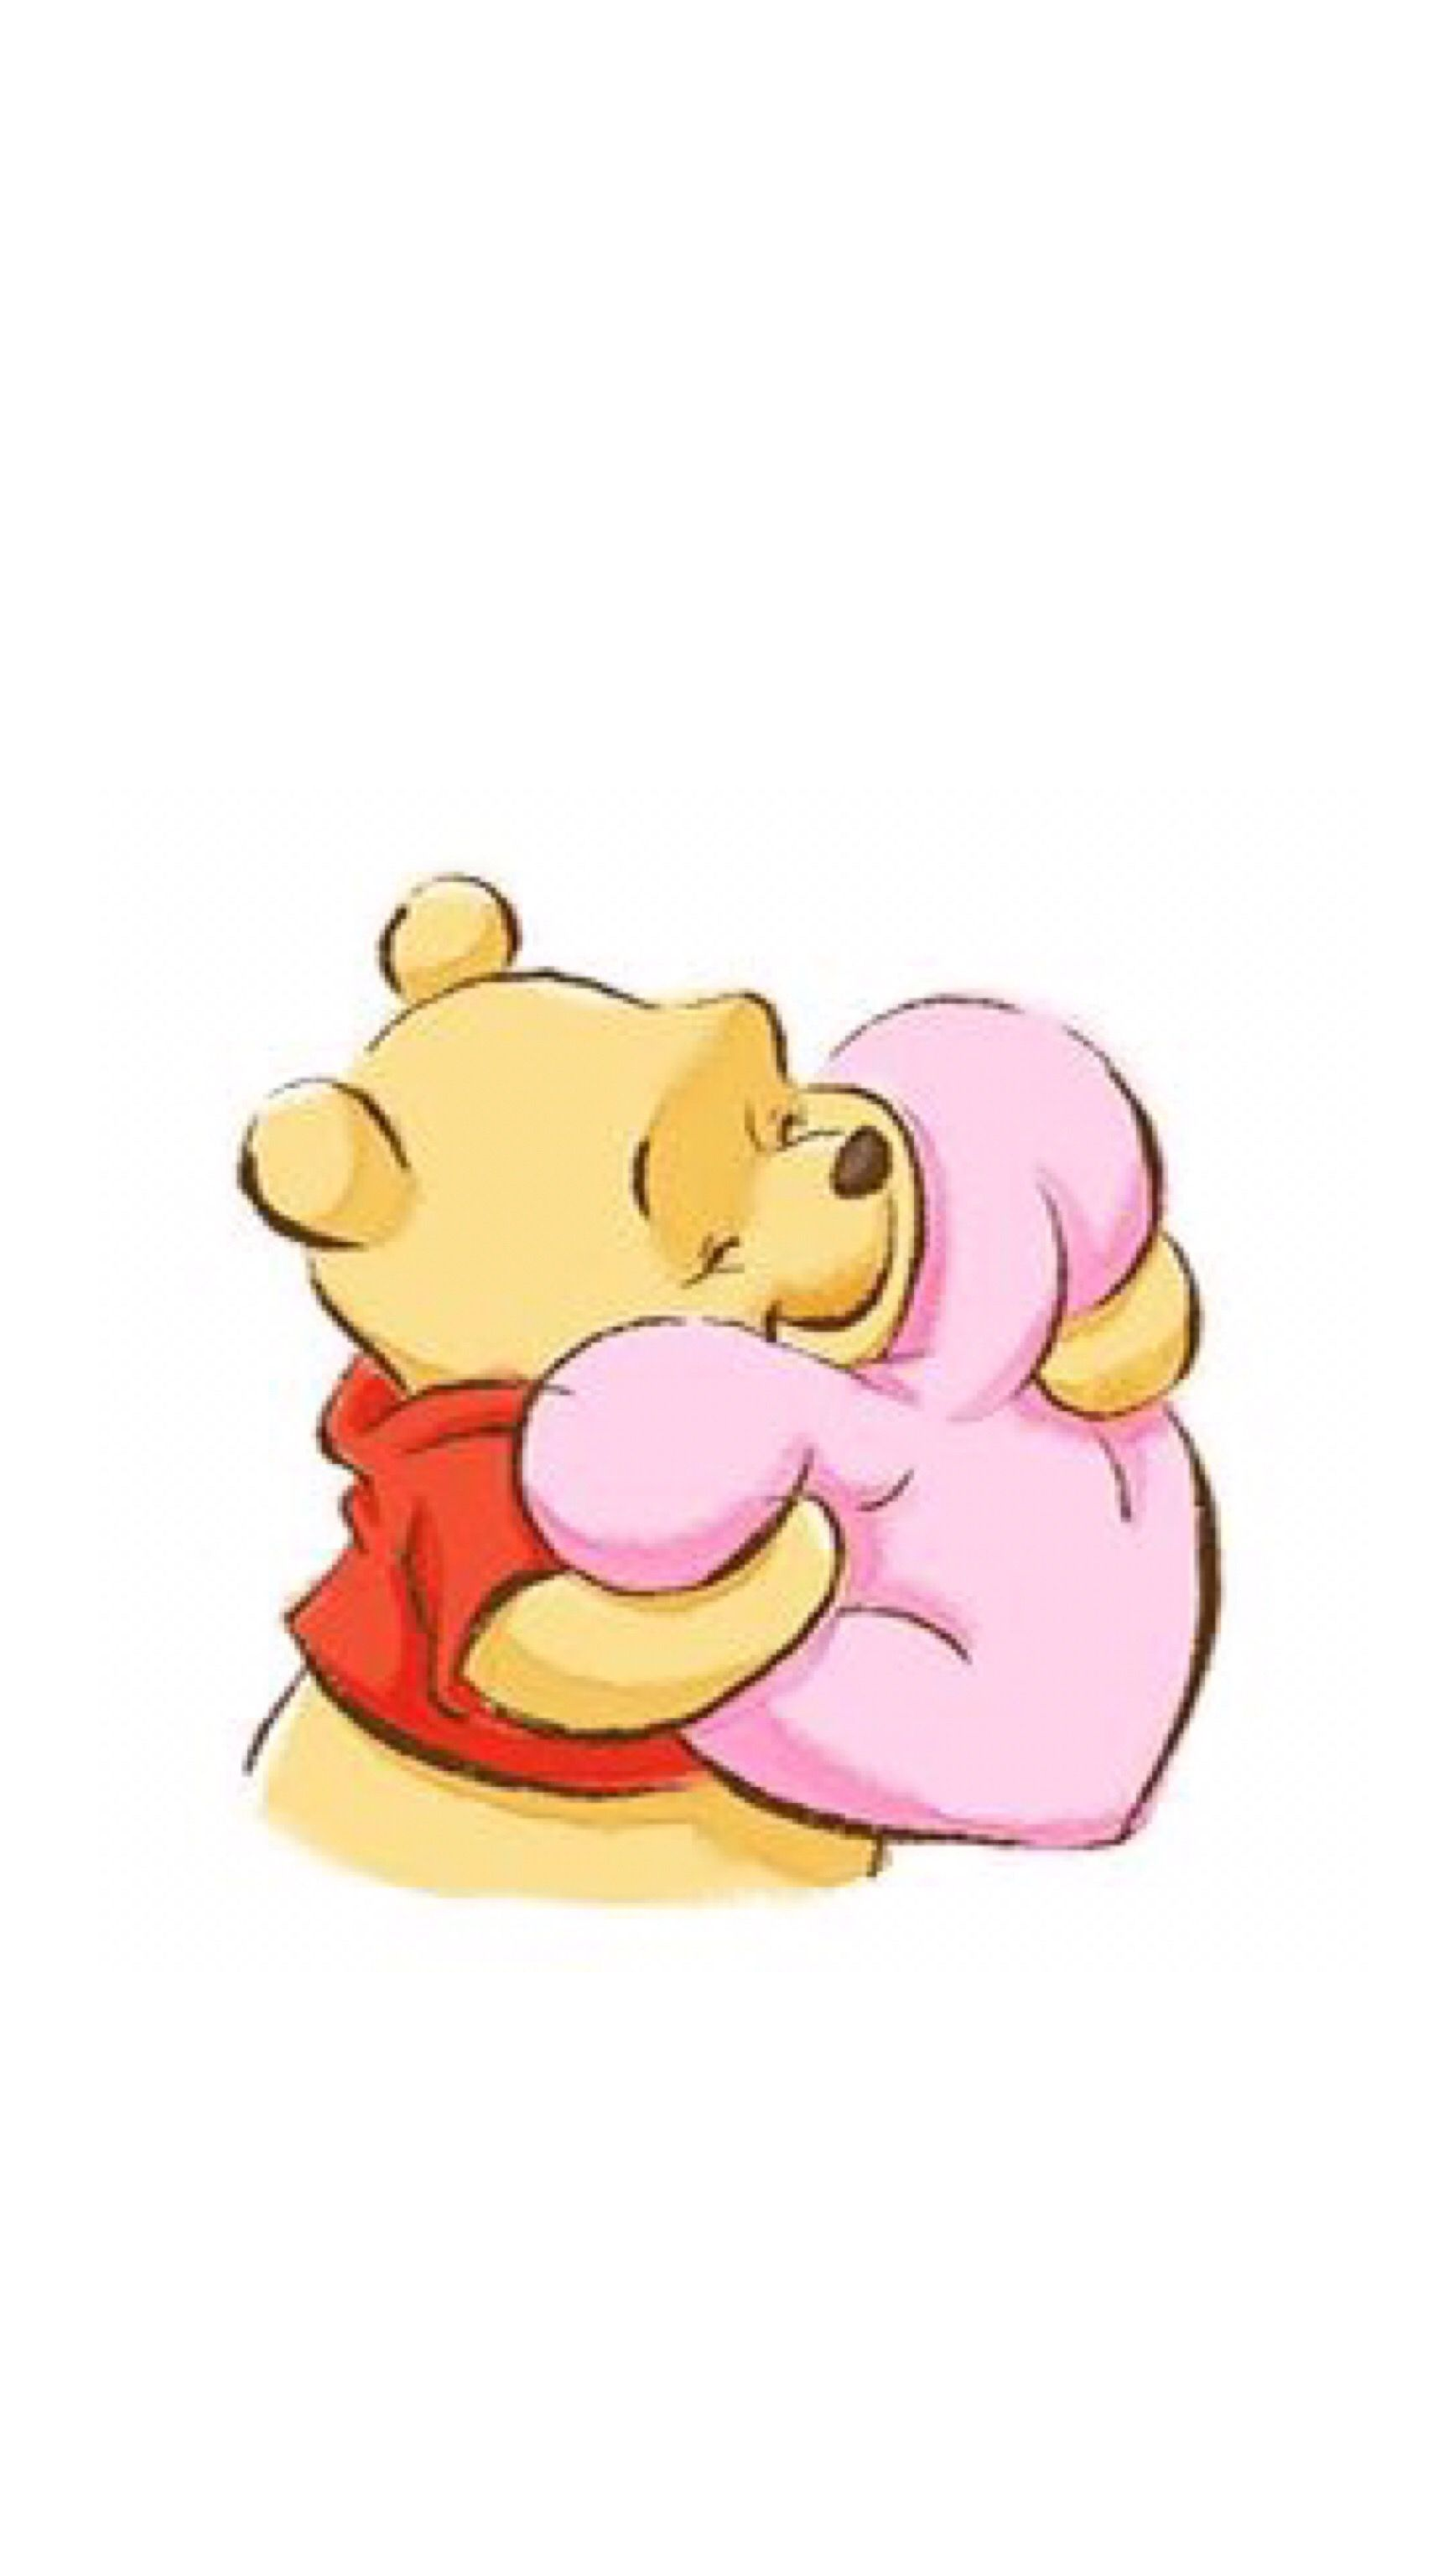 Wallpaper For Android Samsung Wallpapers In 2020 Cute Disney Wallpaper Cute Winnie The Pooh Wallpaper Iphone Disney